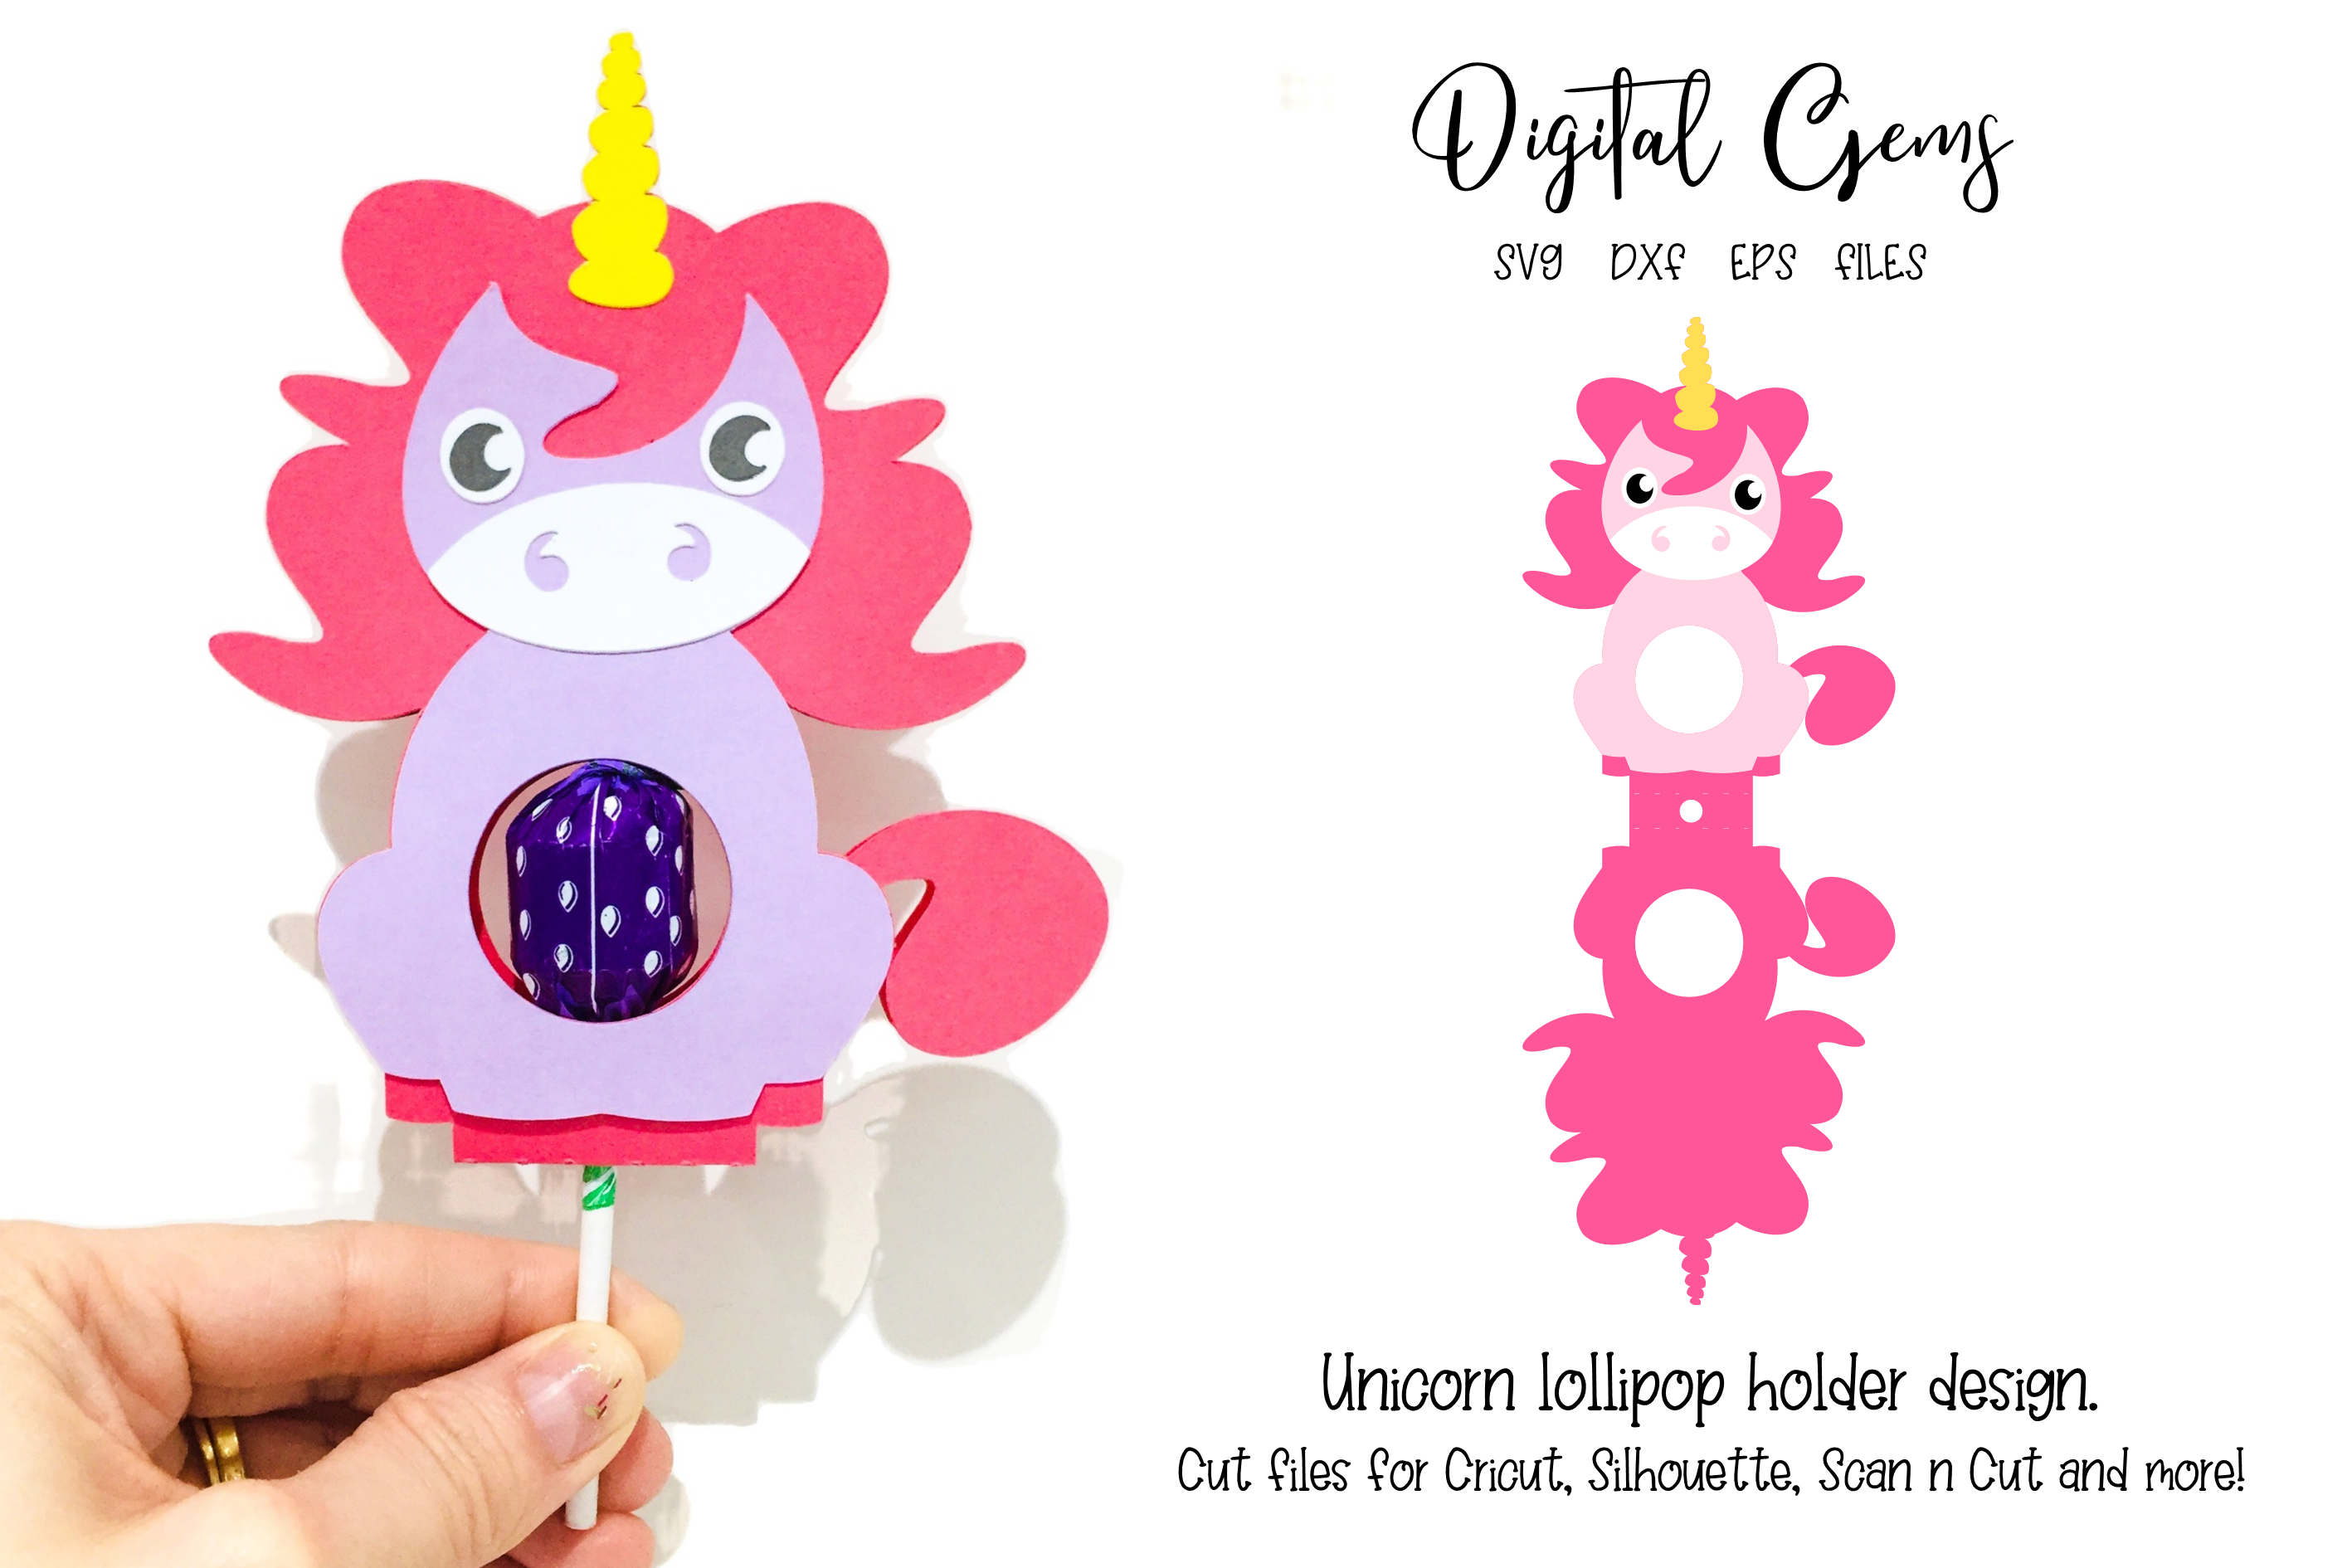 Download Free Unicorn Lollipop Holder Design Graphic By Digital Gems for Cricut Explore, Silhouette and other cutting machines.